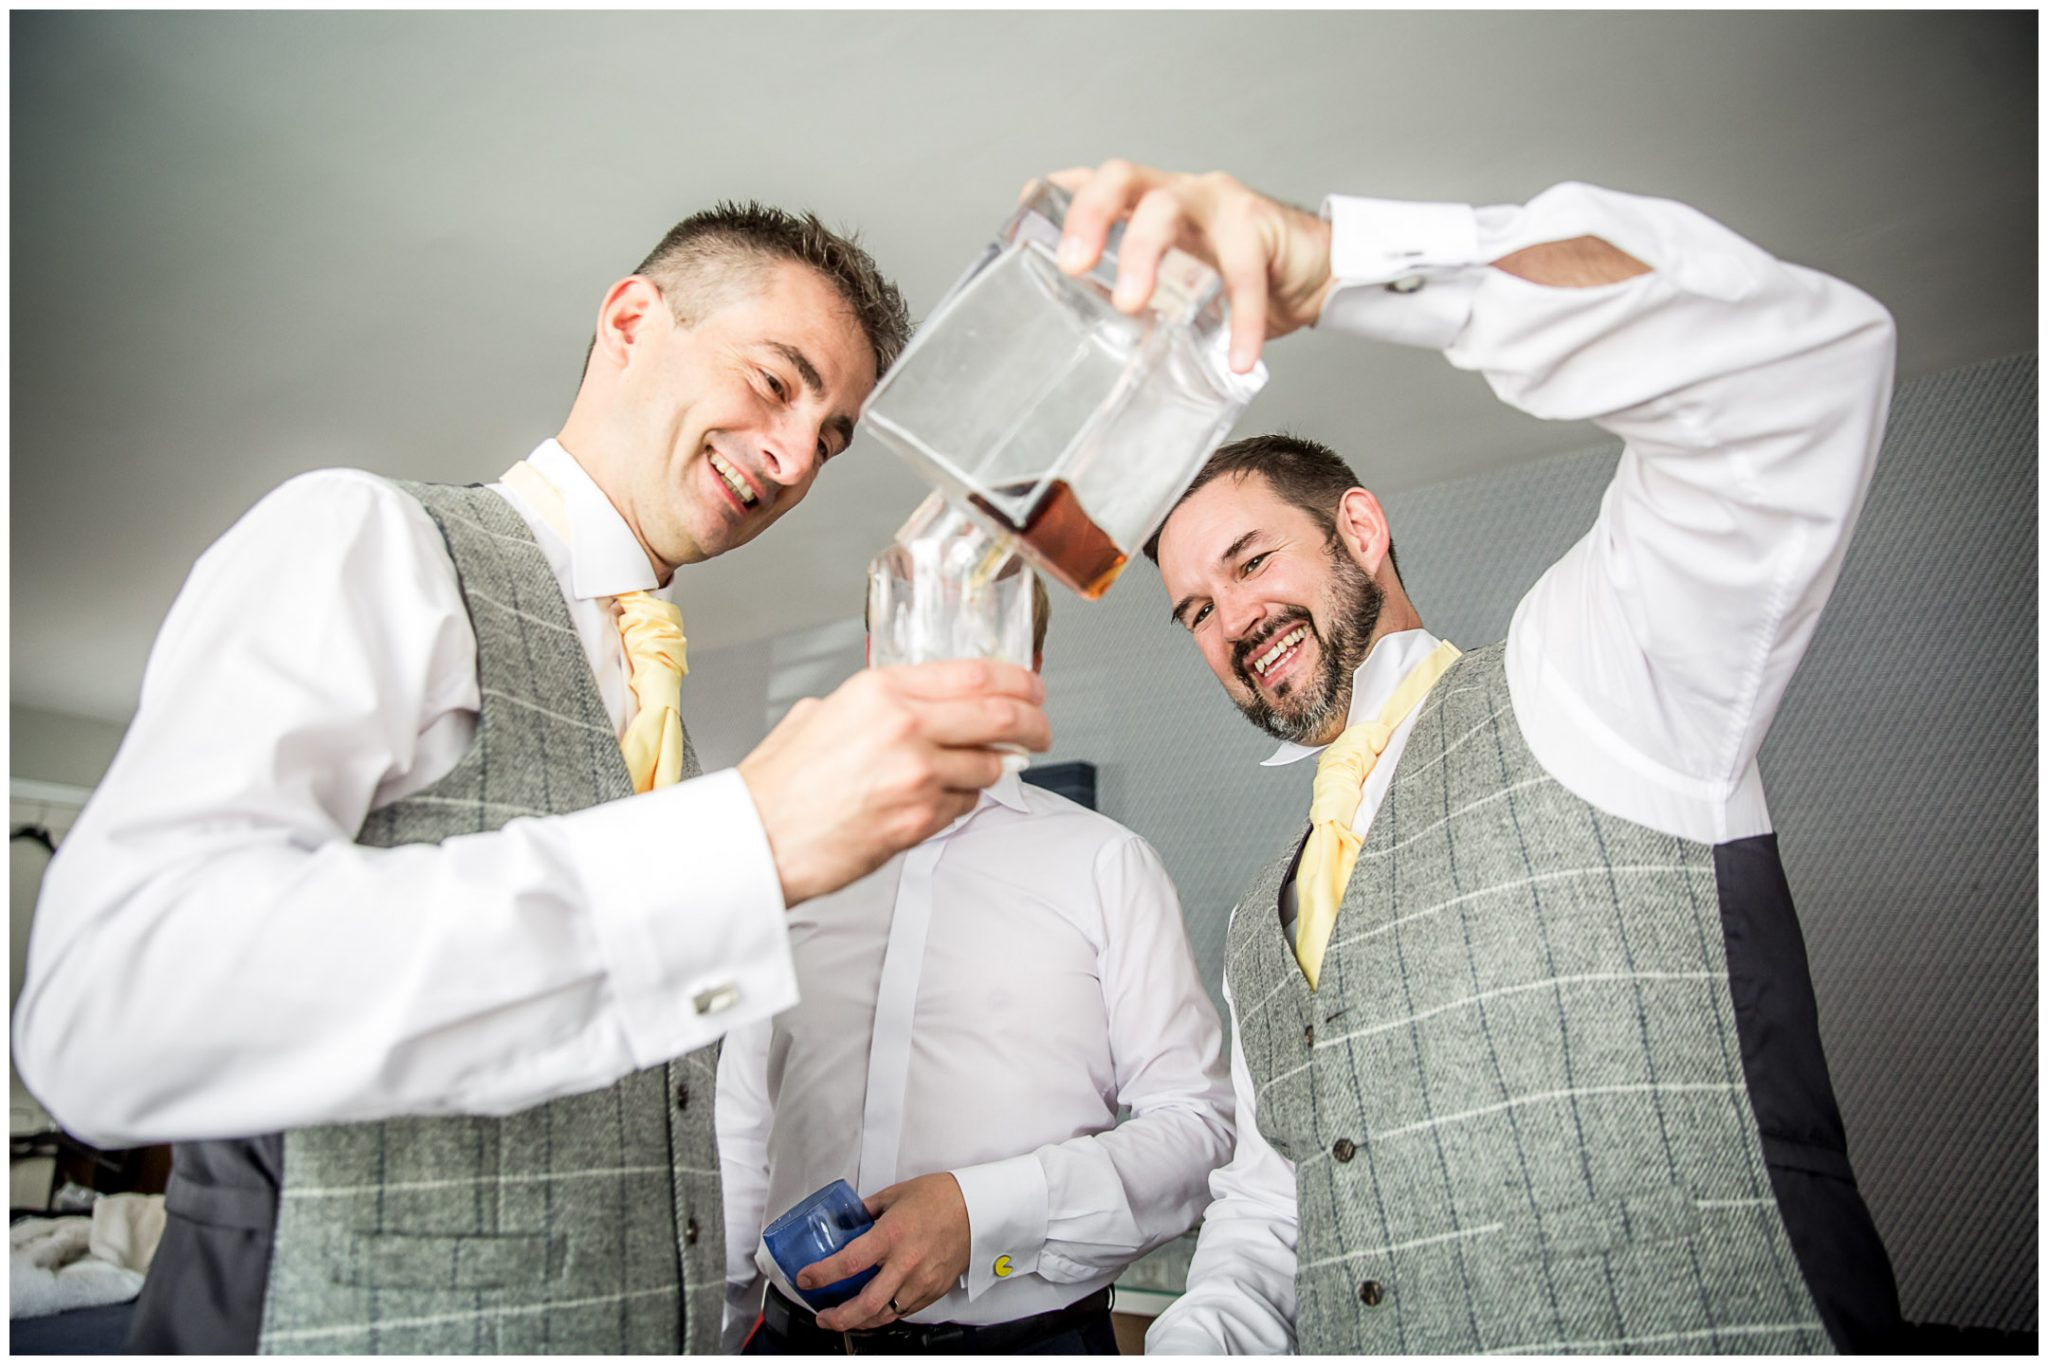 The groom pours a drink for his groomsmen